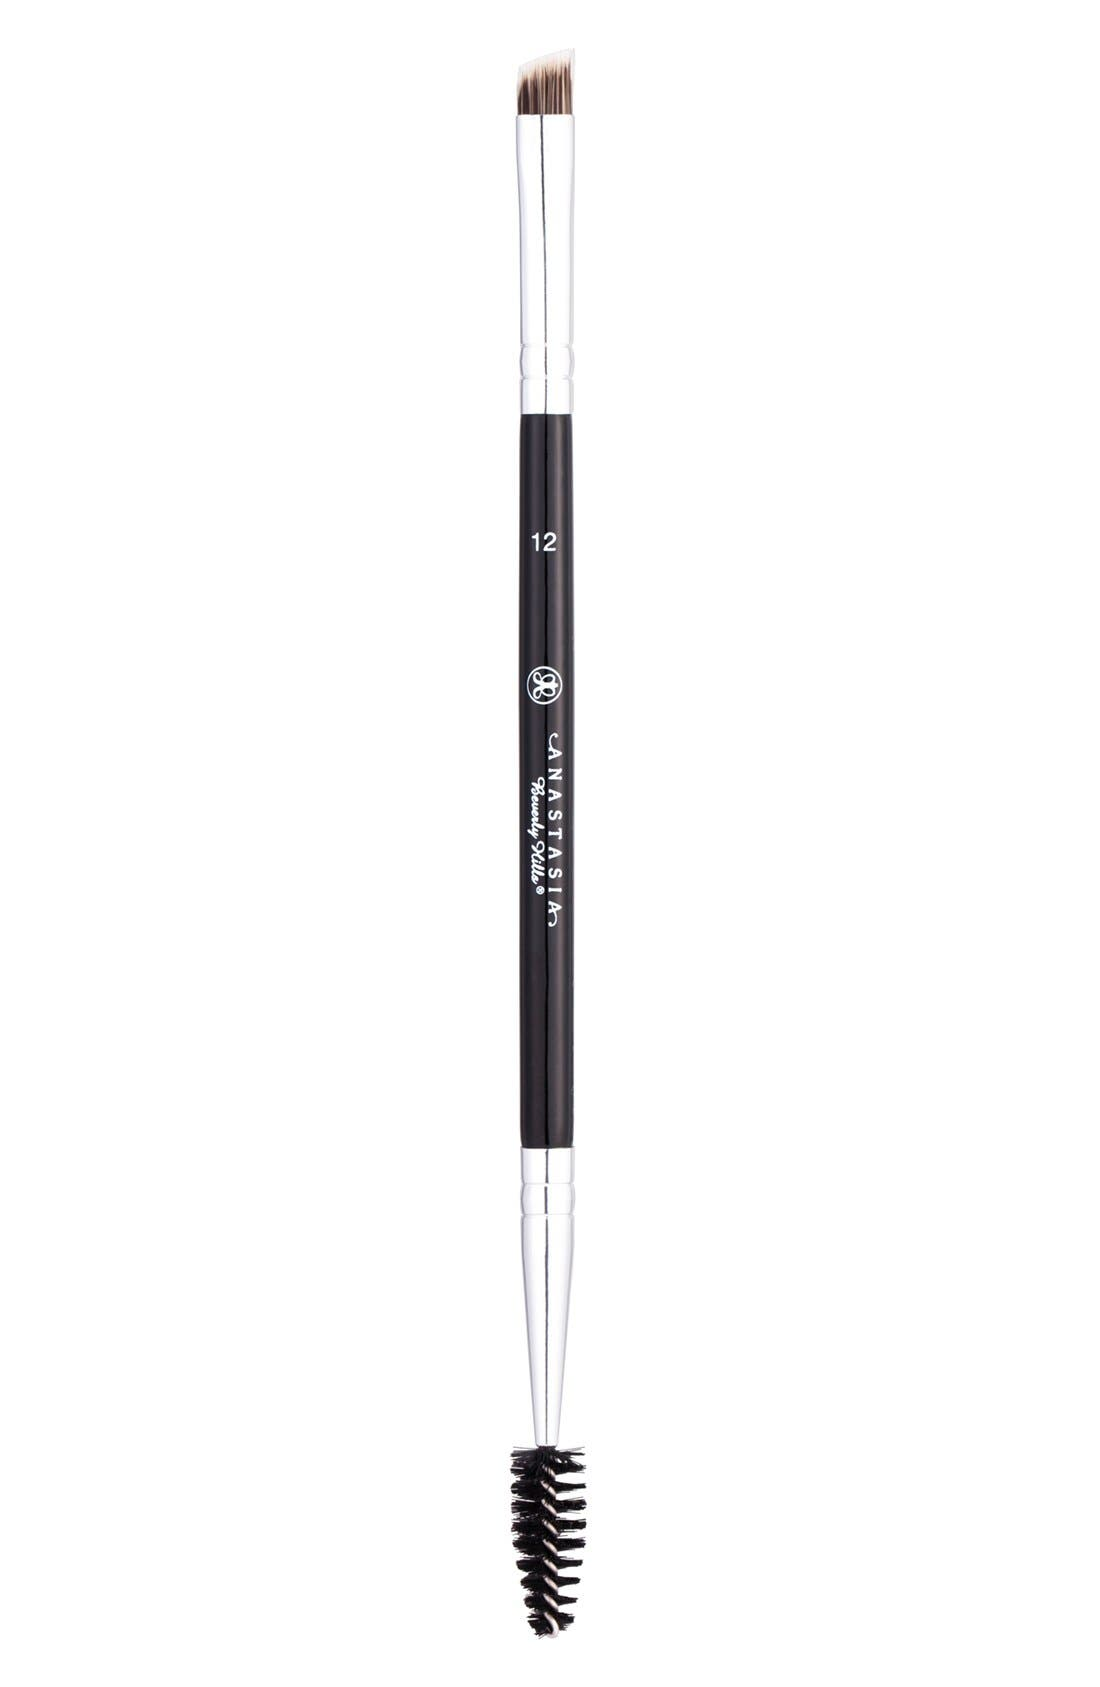 #12 Large Synthetic Duo Brow Brush,                         Main,                         color, NO COLOR